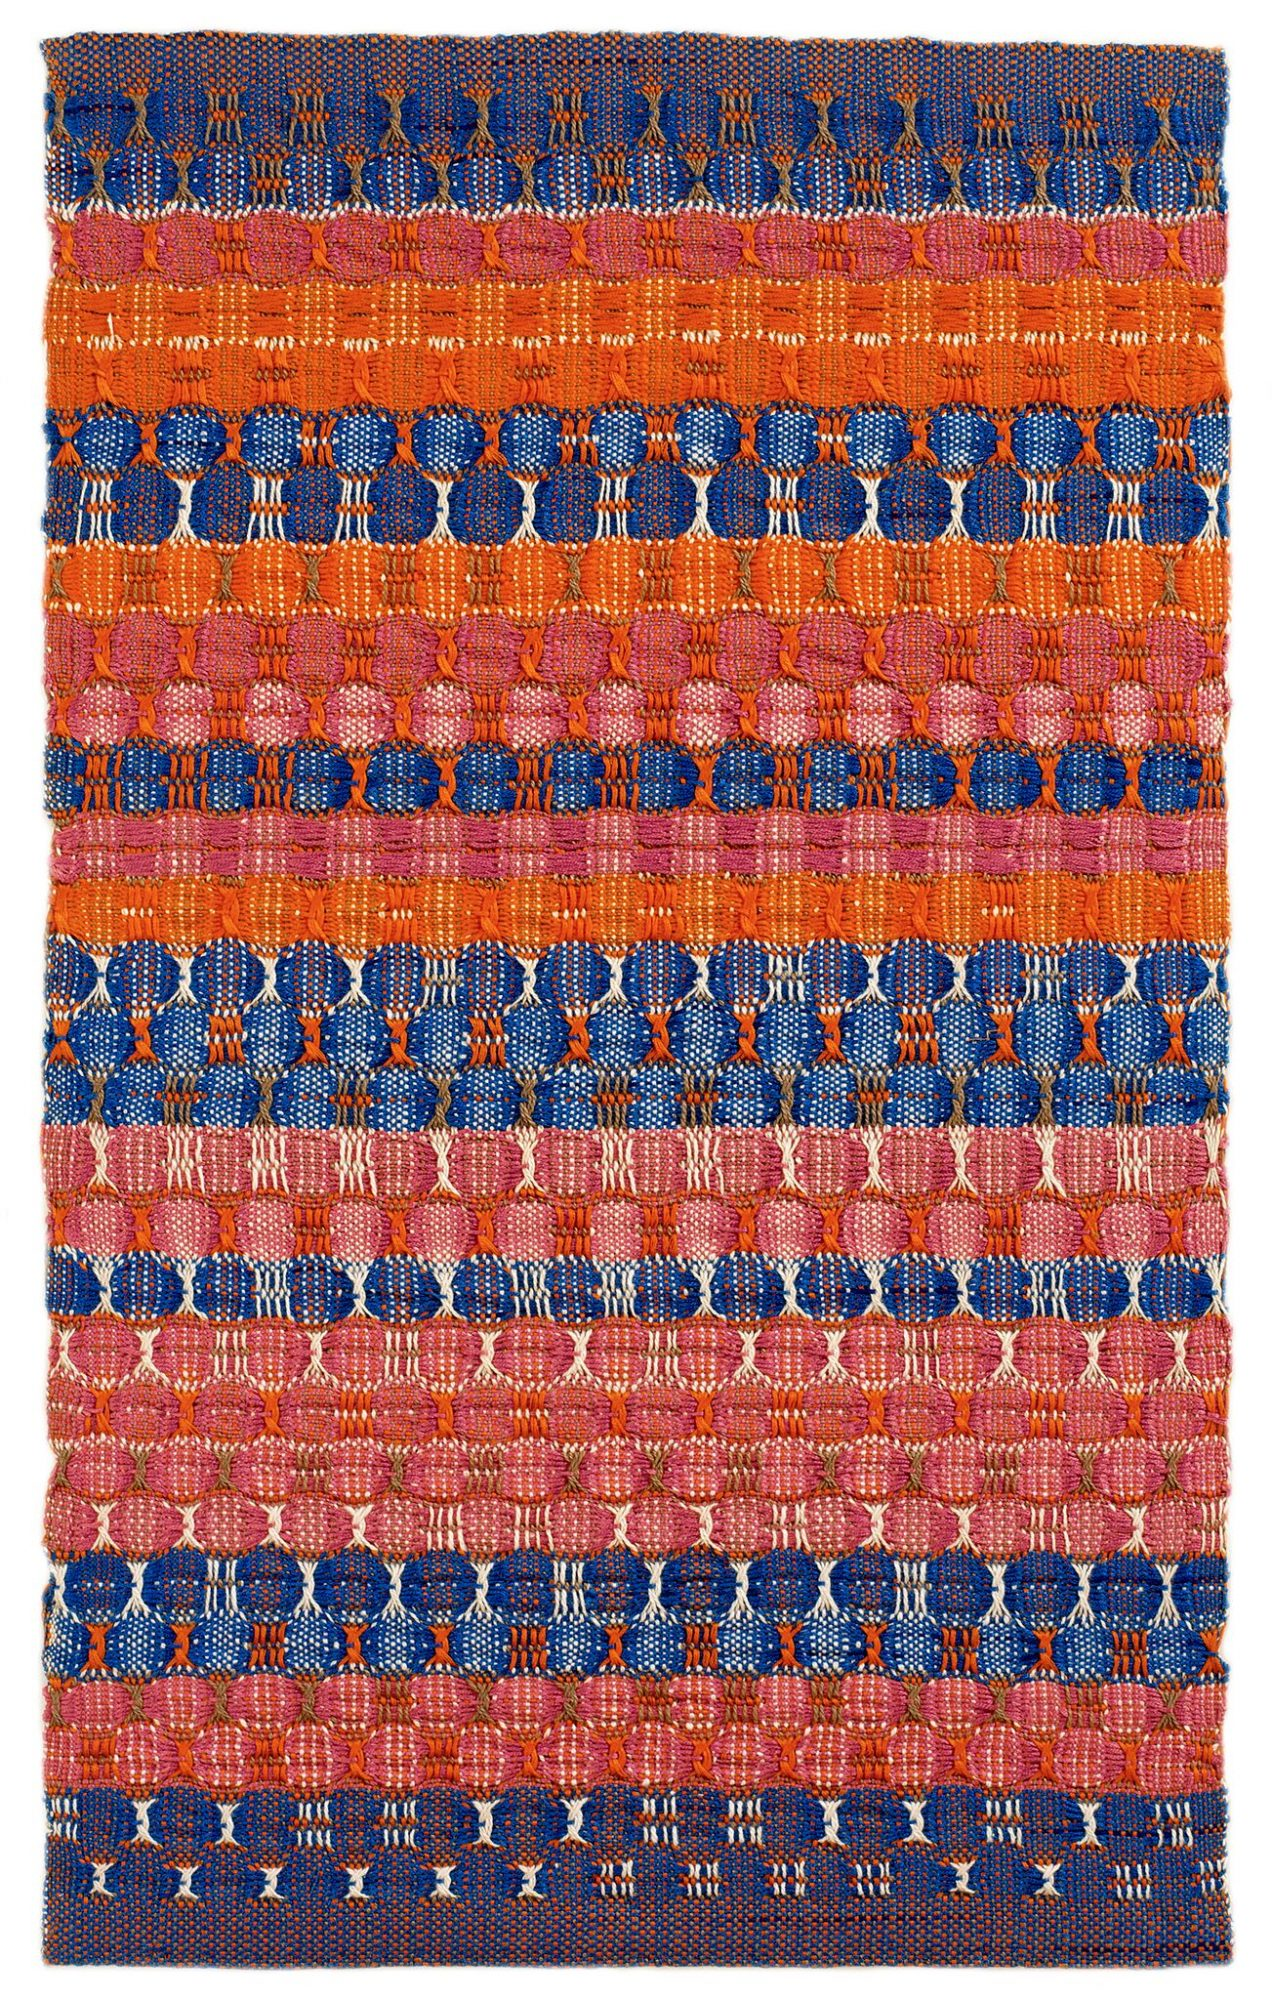 Anni Albers, Red and Blue Layers, 1954, katoen, 61,6 x 37,8 cm - foto The Josef and Anni Albers Foundation.